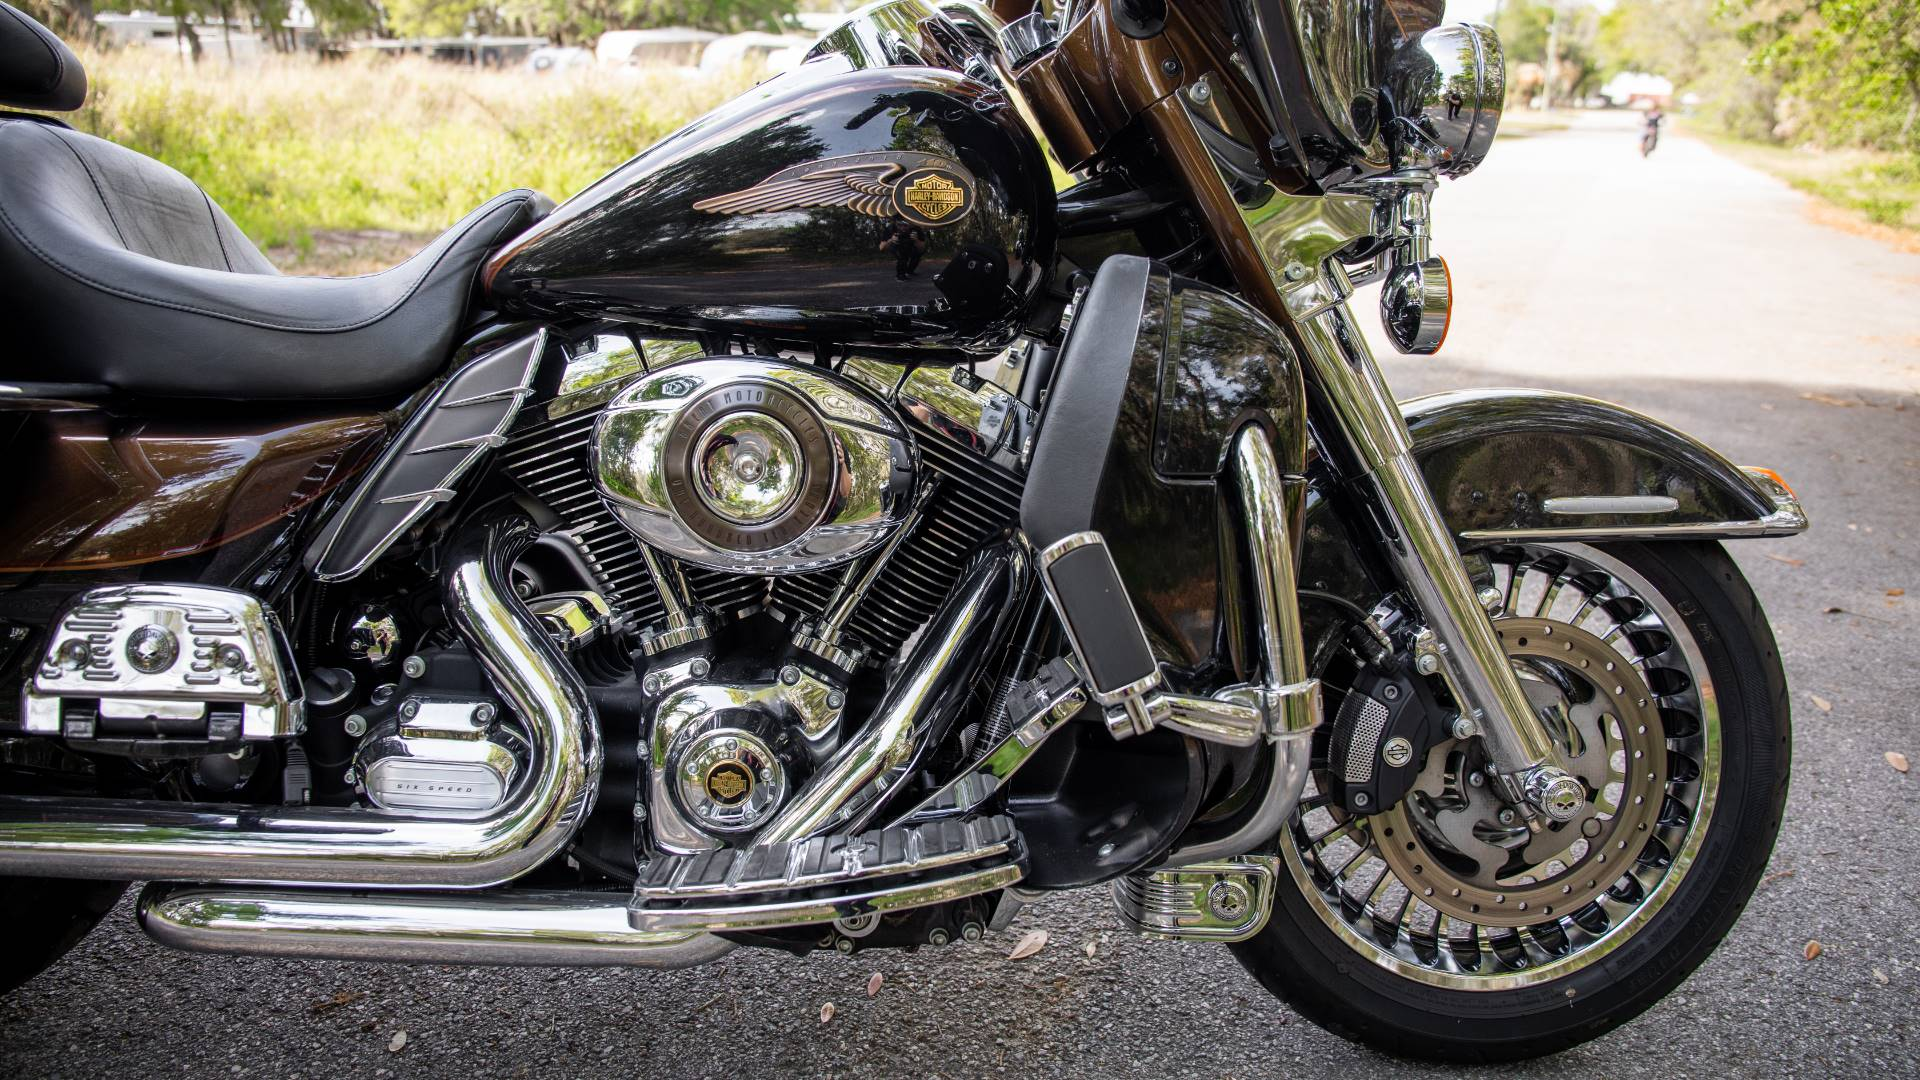 2013 Harley-Davidson Electra Glide® Ultra Limited 110th Anniversary Edition in Lakeland, Florida - Photo 45